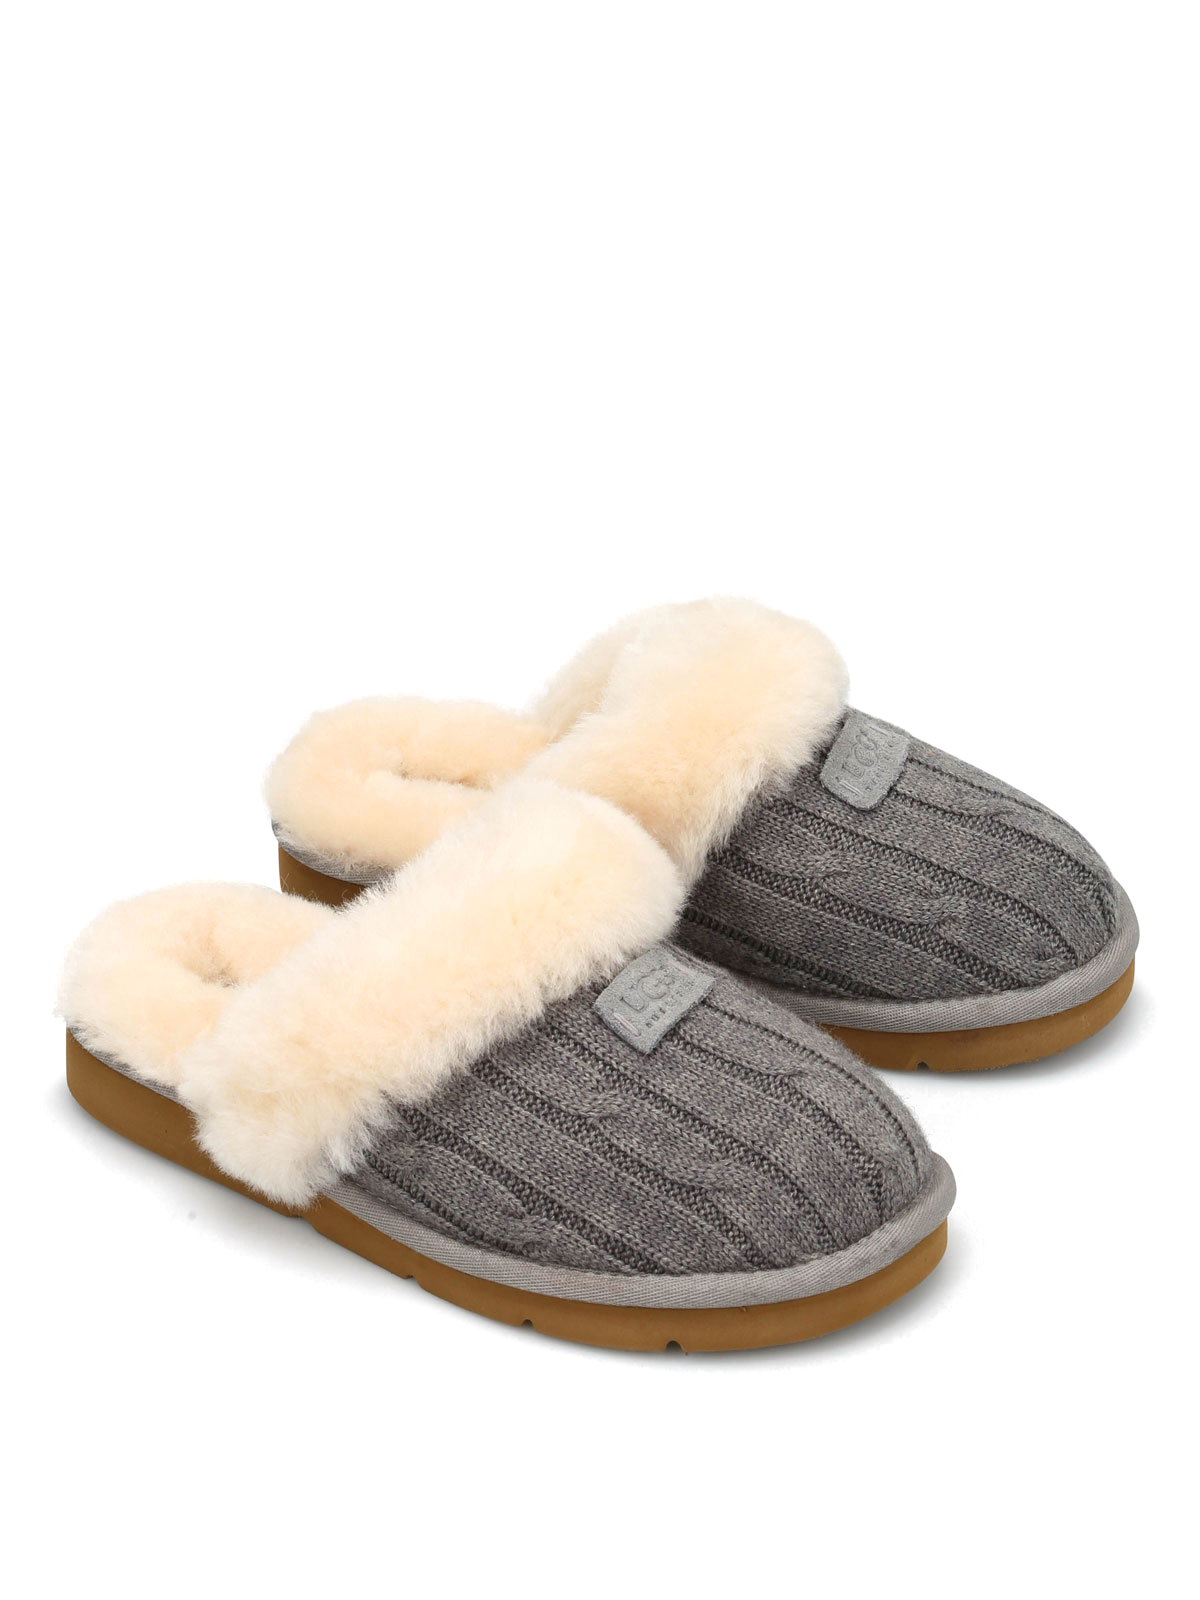 Ugg Cozy Knit Shearling Slippers Loafers Slippers 1865 W Hgr